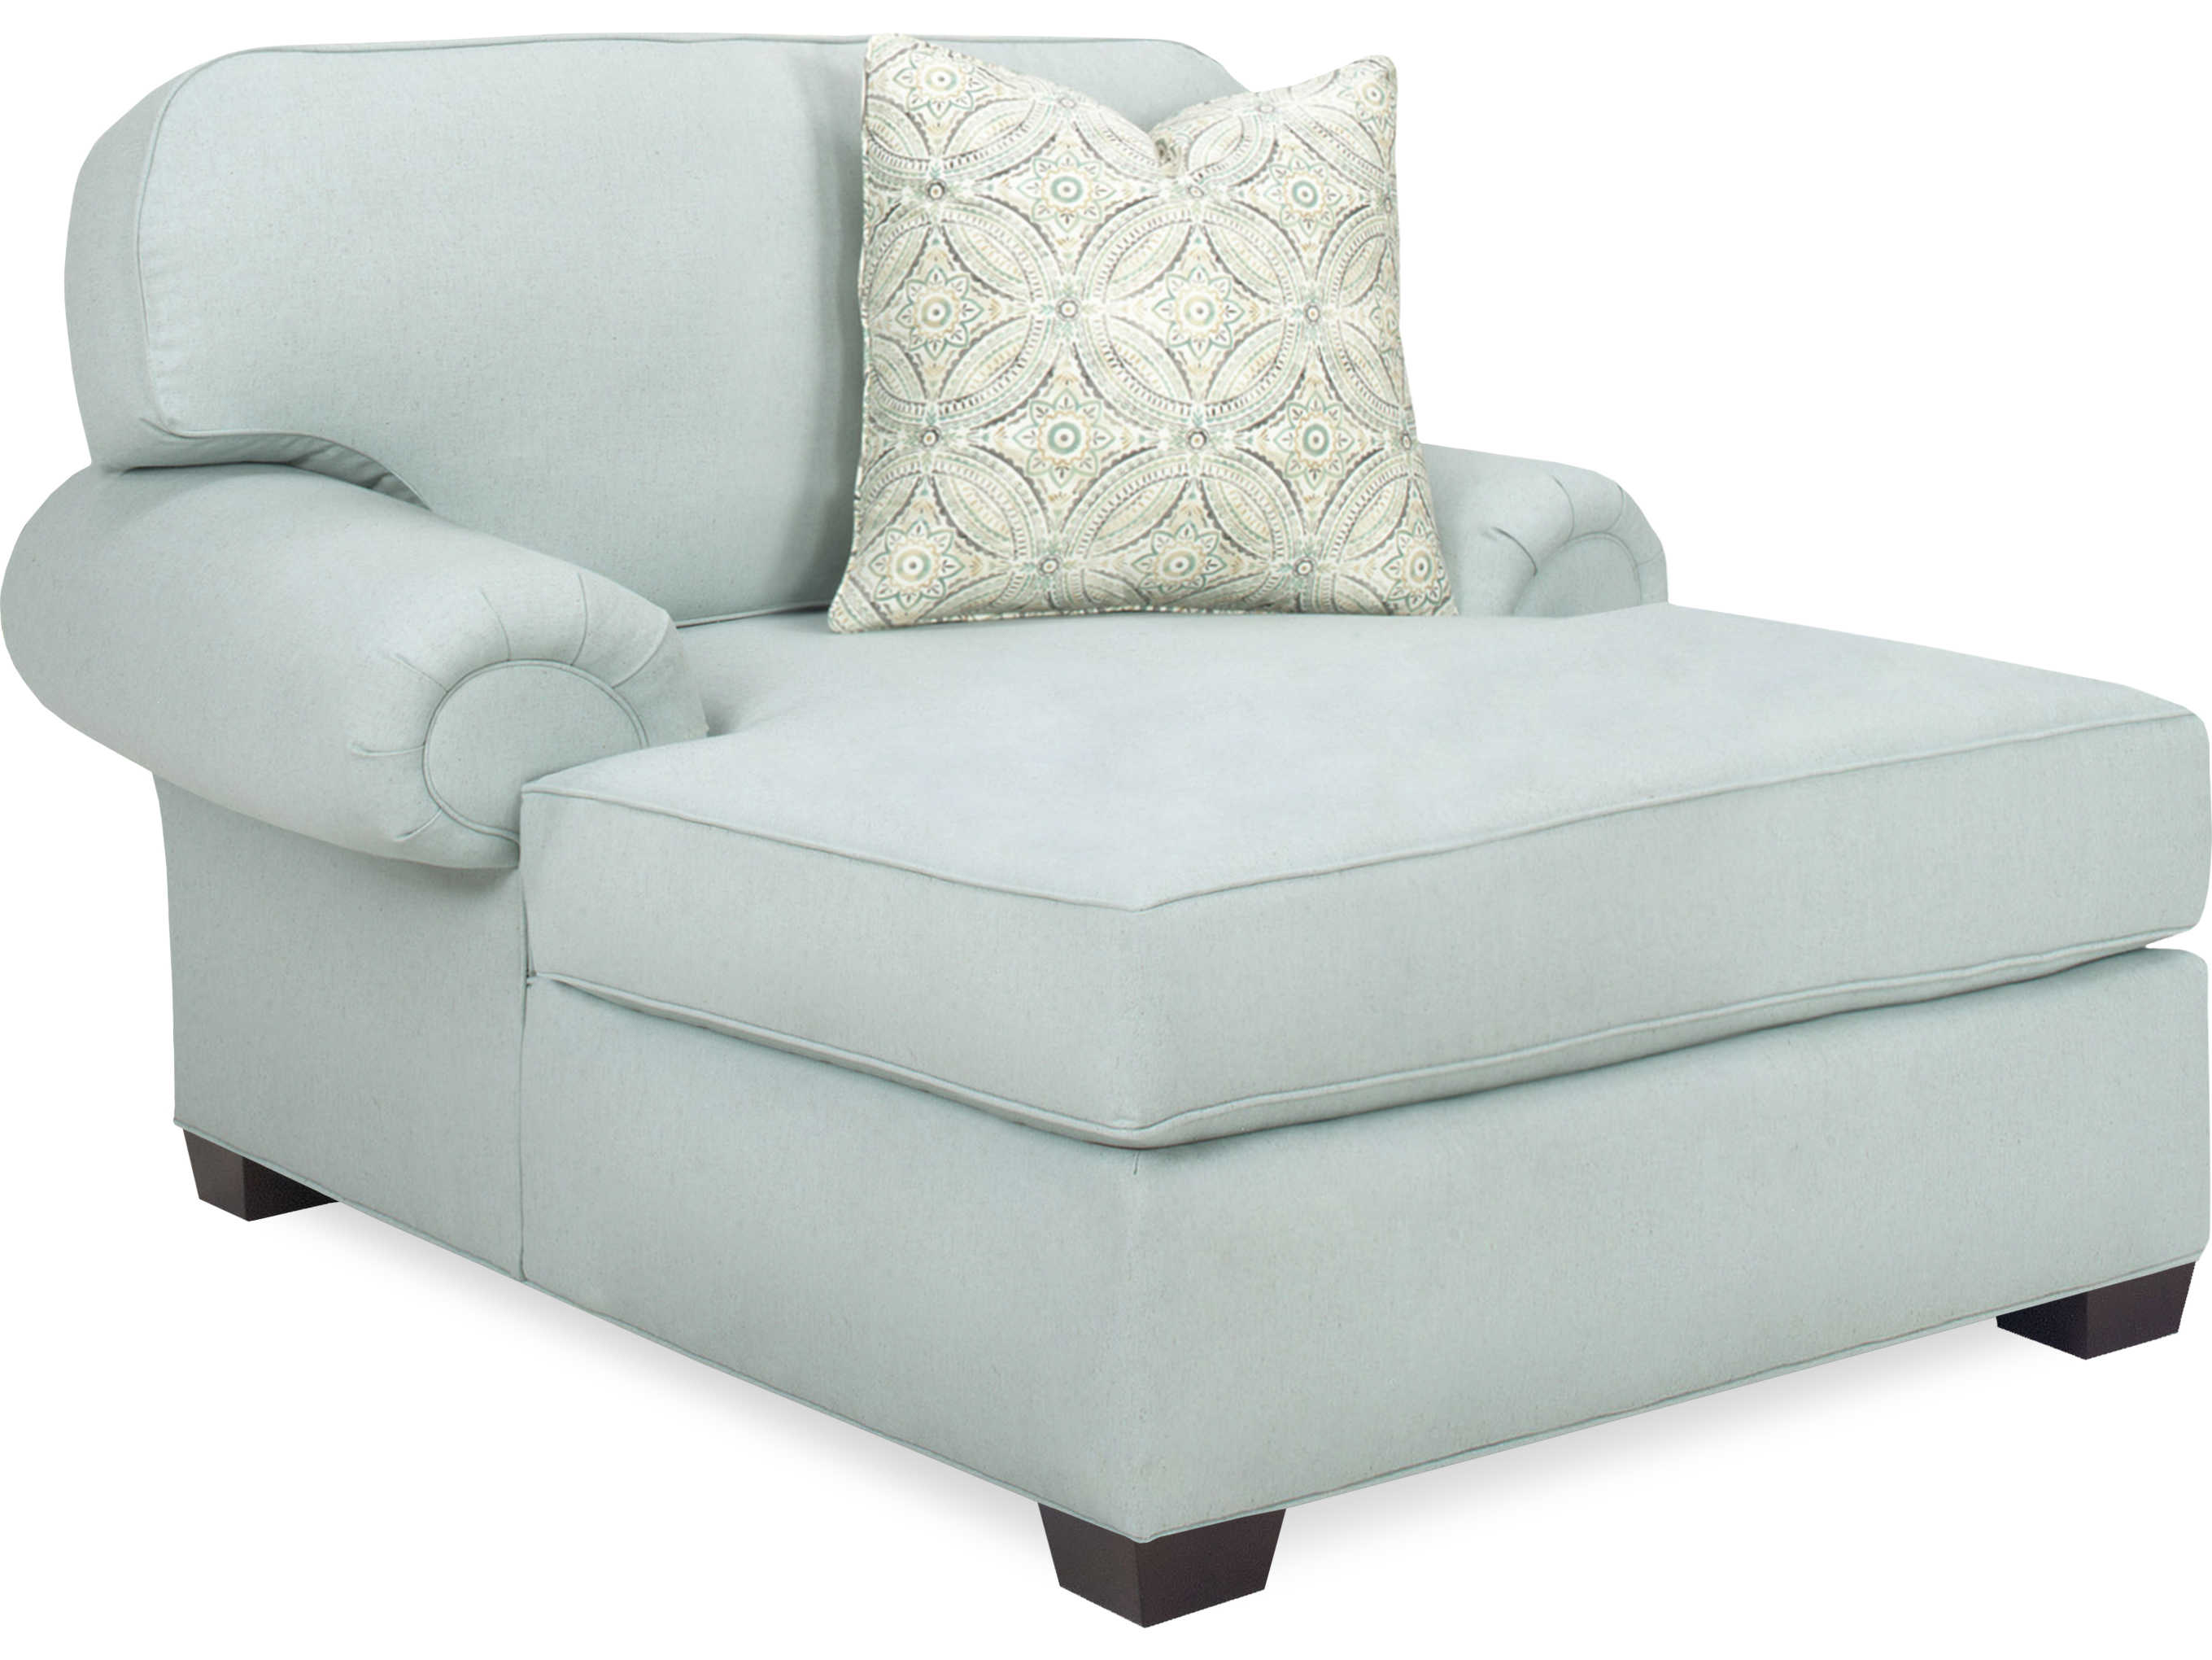 Temple Furniture Comfy Chaise Lounge Chair Tmf3104